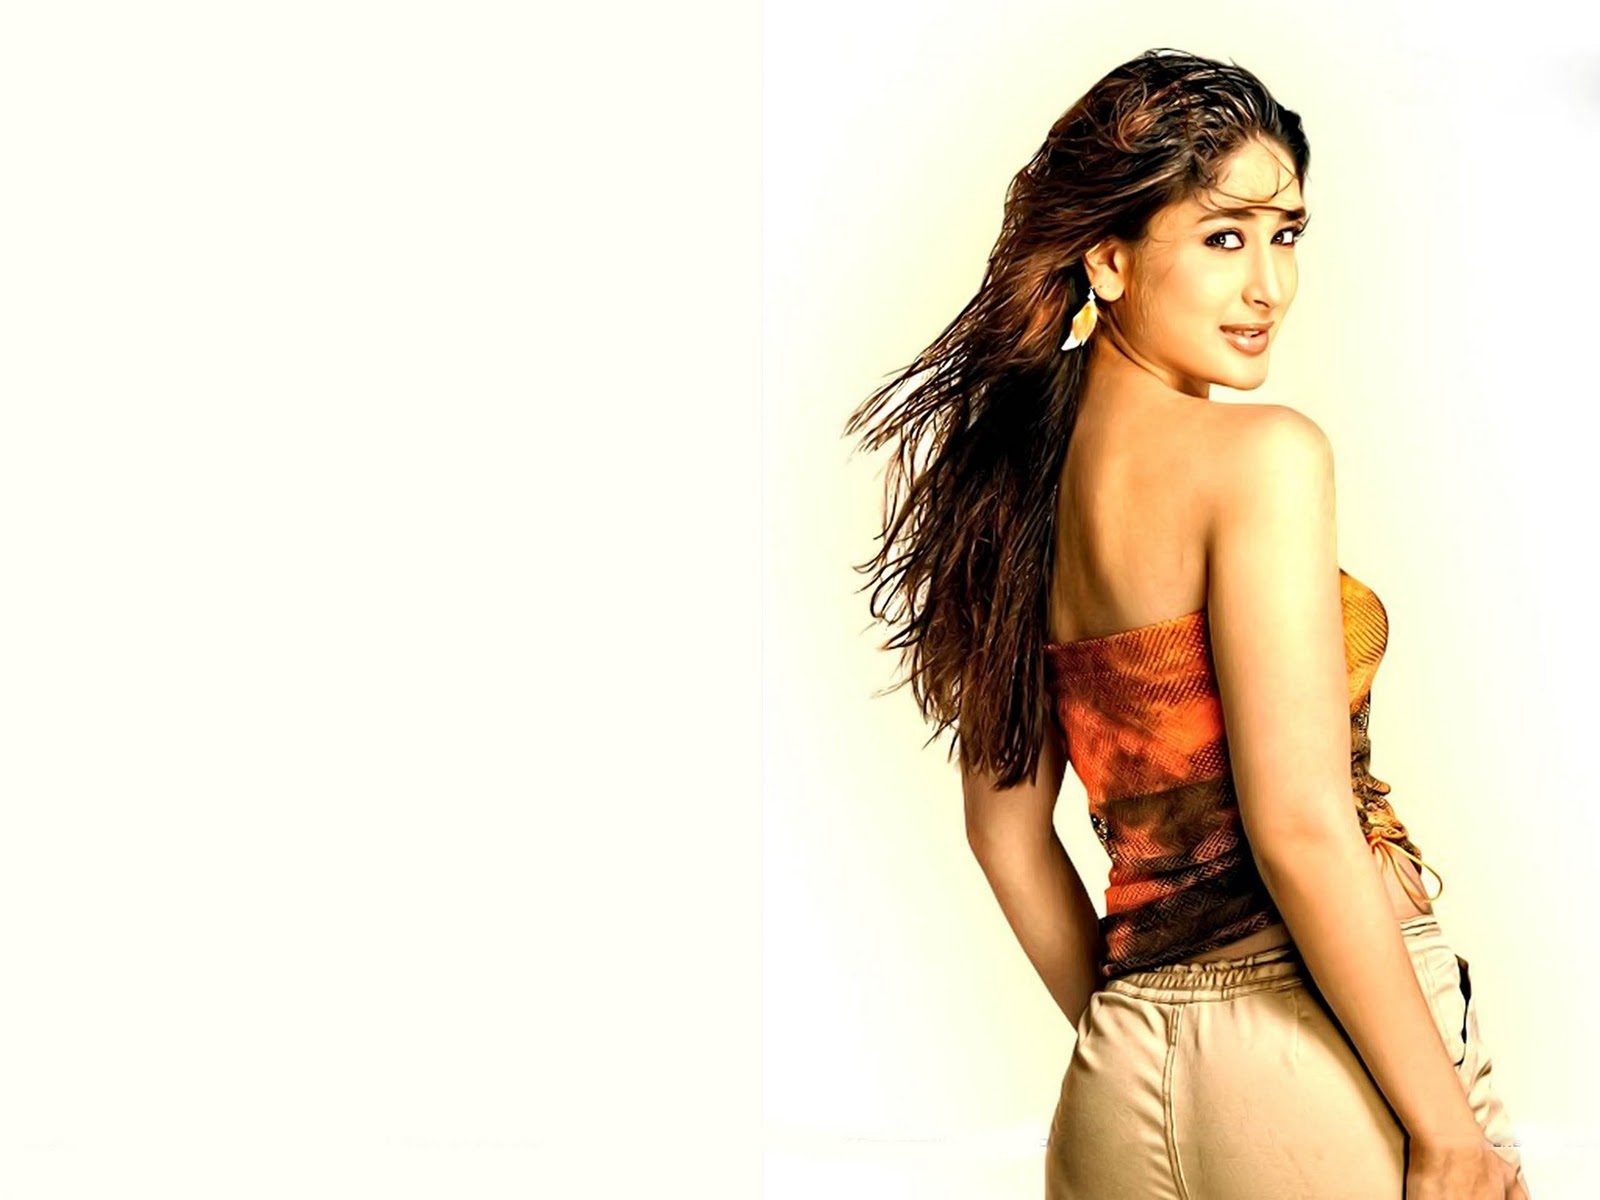 http://3.bp.blogspot.com/-3cNcOCvjCuI/TdGAhOfqLCI/AAAAAAAAAB8/Tw-Ek4Dwsl8/s1600/The-best-top-desktop-kareena-kapoor-wallpapers-hd-kareena-kapoor-wallpaper-26.jpg